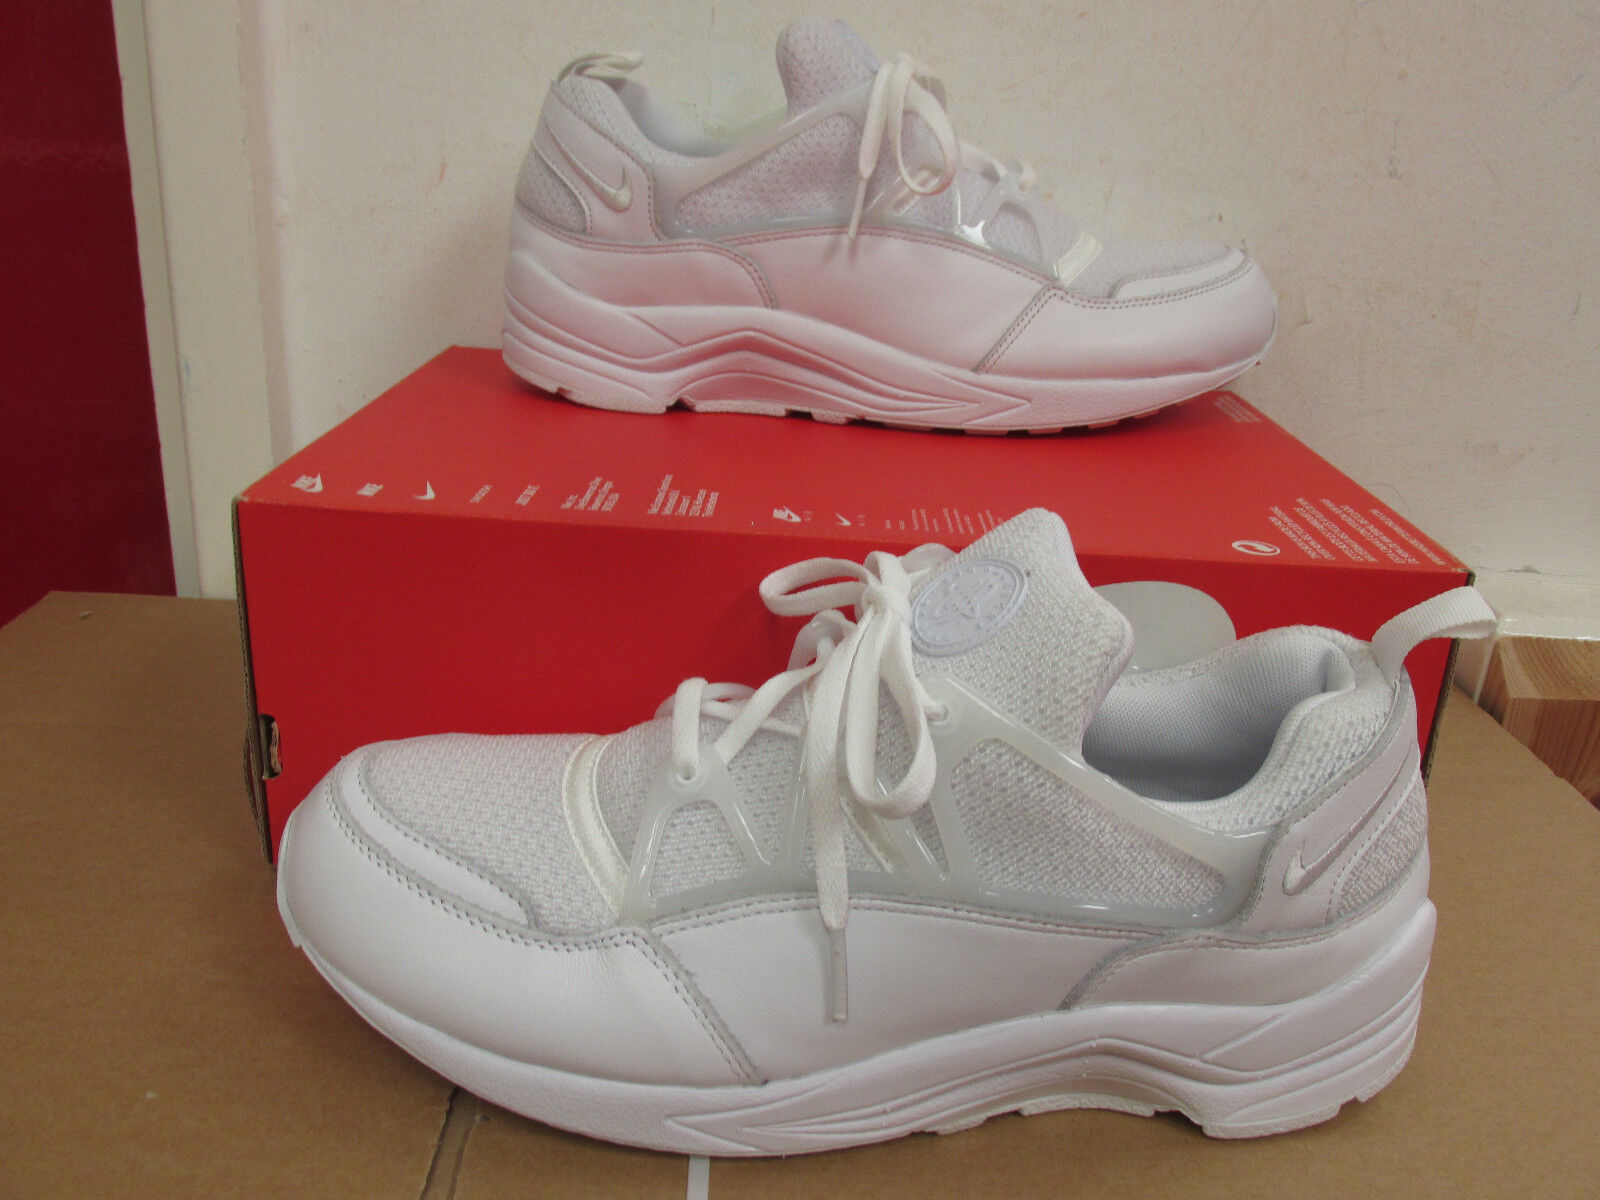 c0a2dba3e86ef4 Nike Huarache Light 306127 111 Mens Trainers sneakers shoes CLEARANCE  CLEARANCE CLEARANCE c81ab1